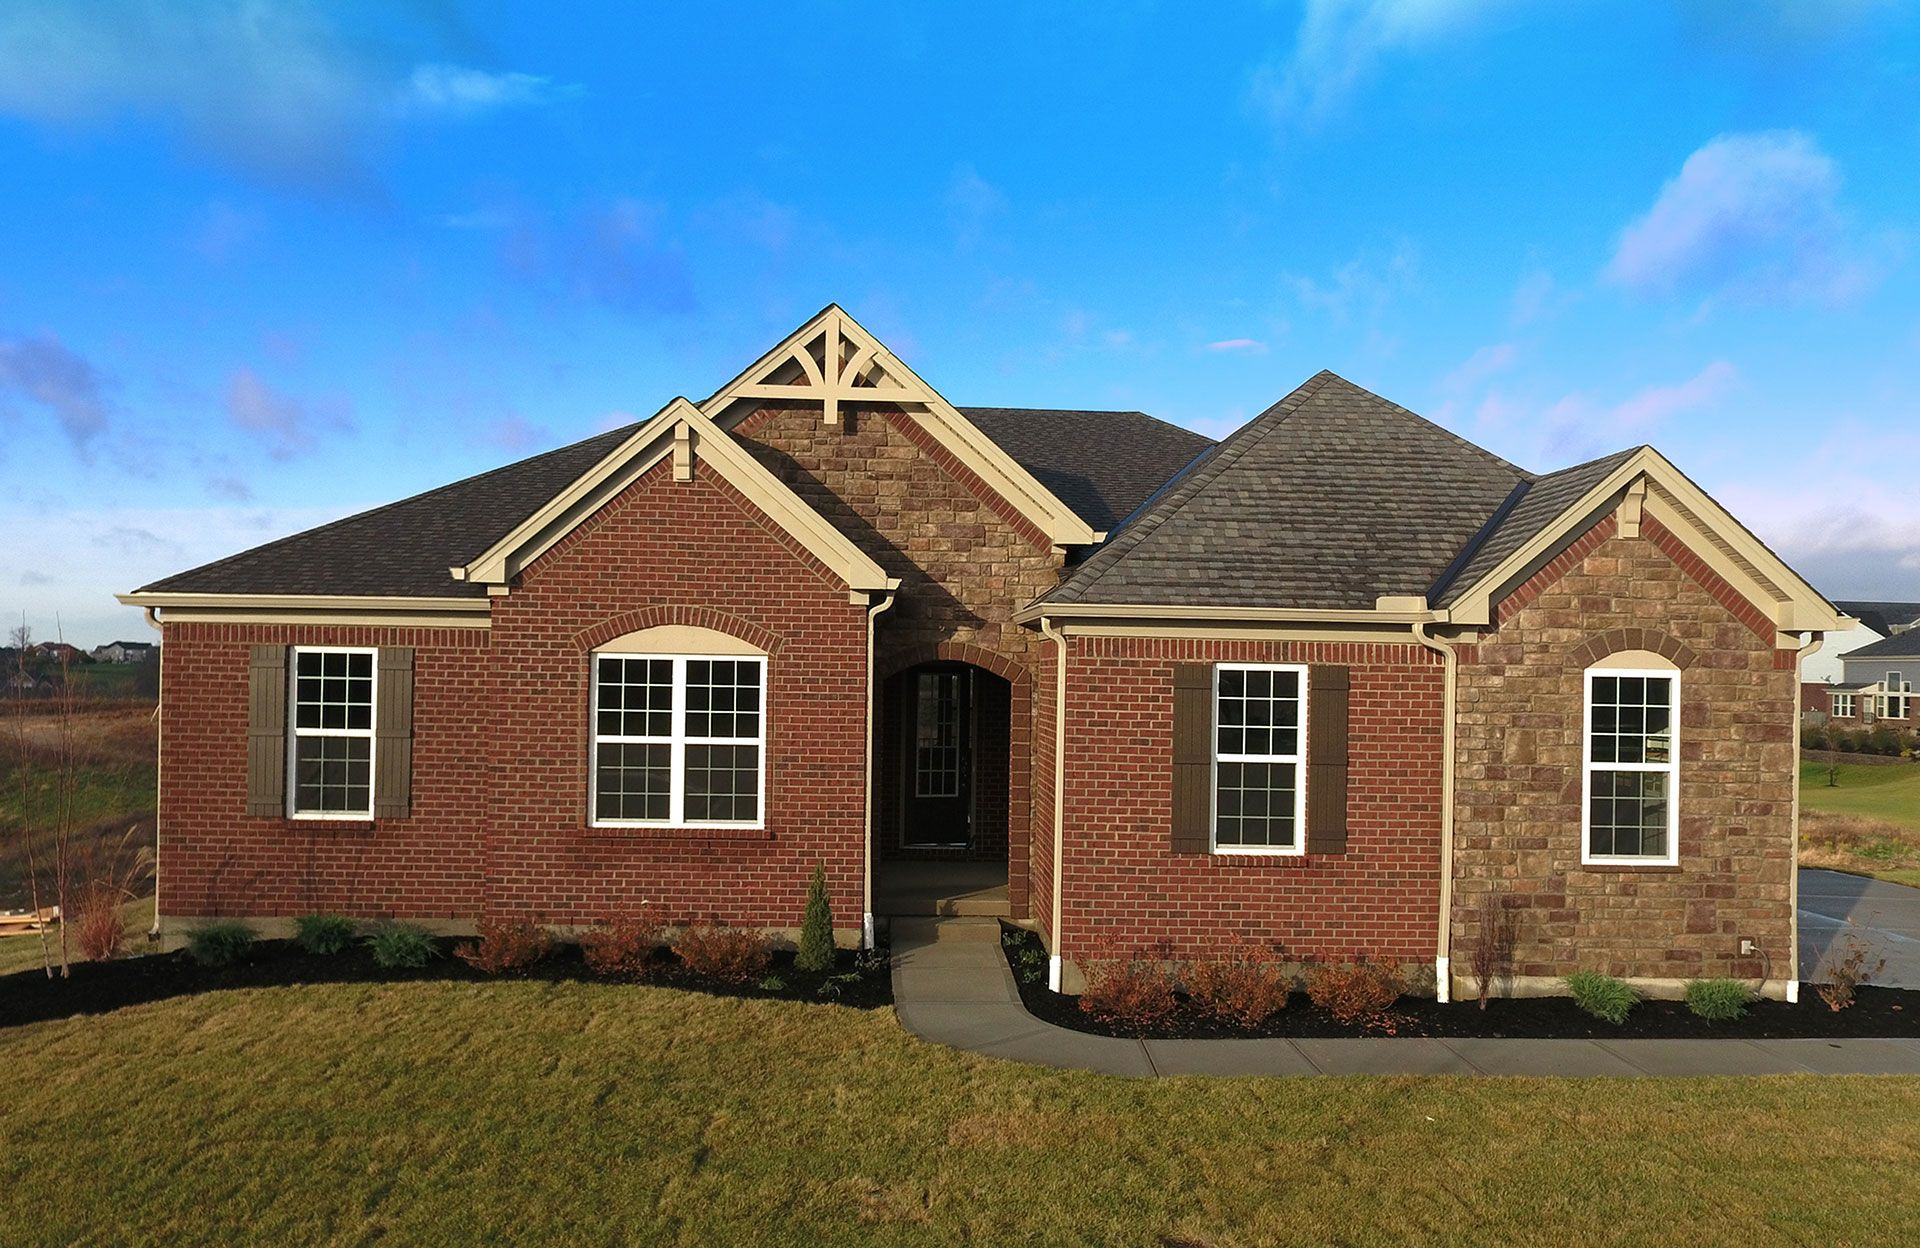 west chester ohio homes for sale luxury real estate liv sotheby 39 s international realty. Black Bedroom Furniture Sets. Home Design Ideas